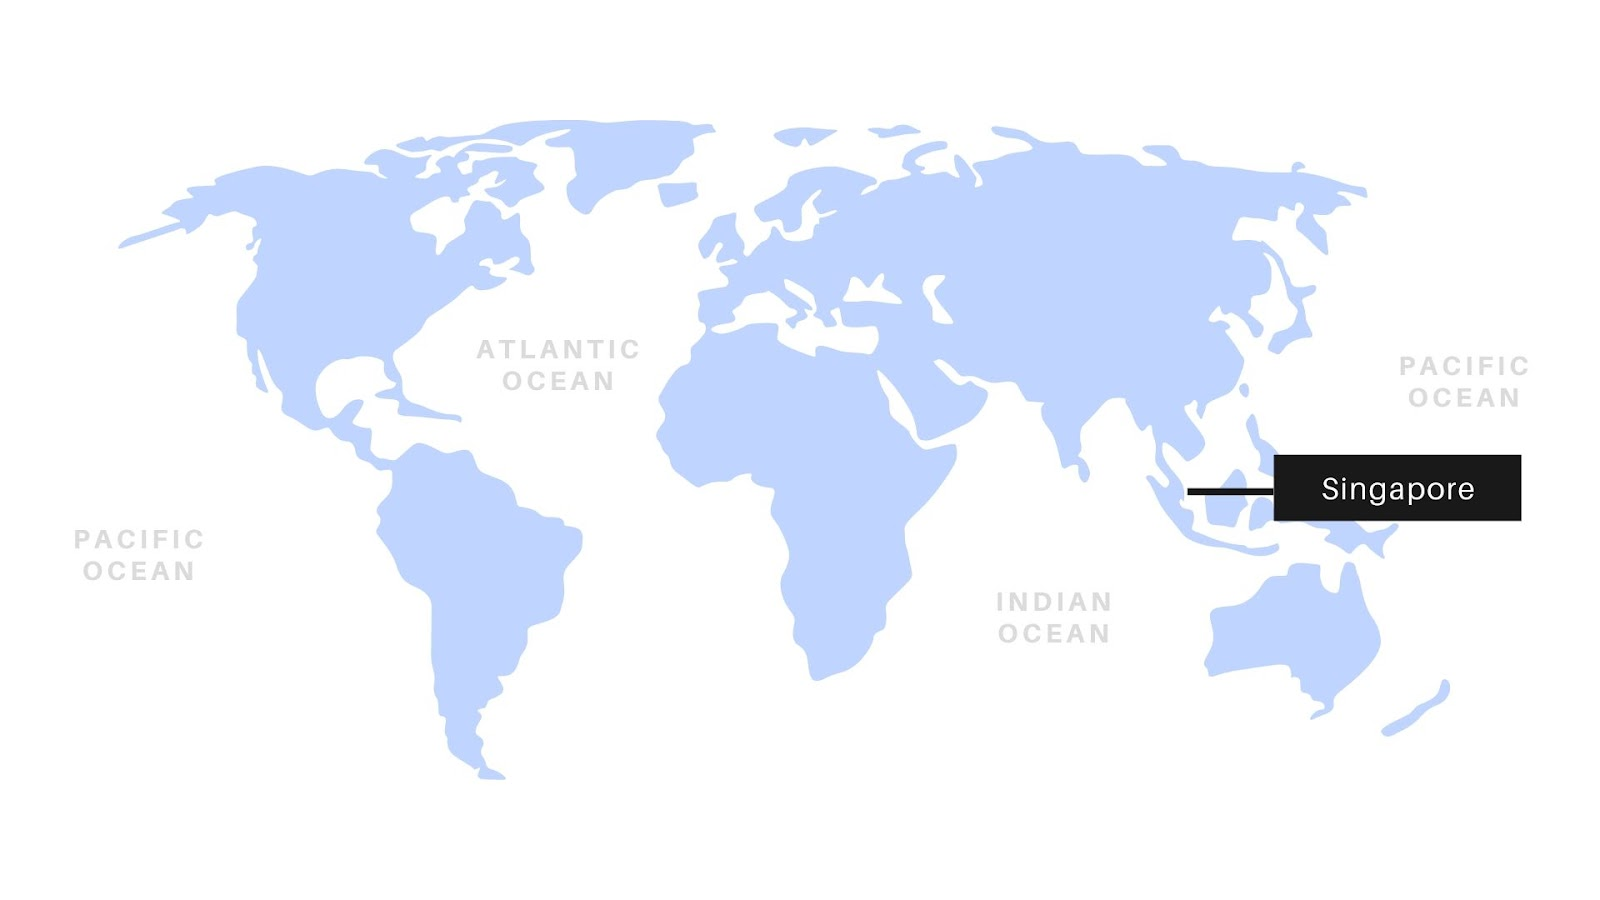 Setting up an offshore company in Singapore: Singapore on the world map